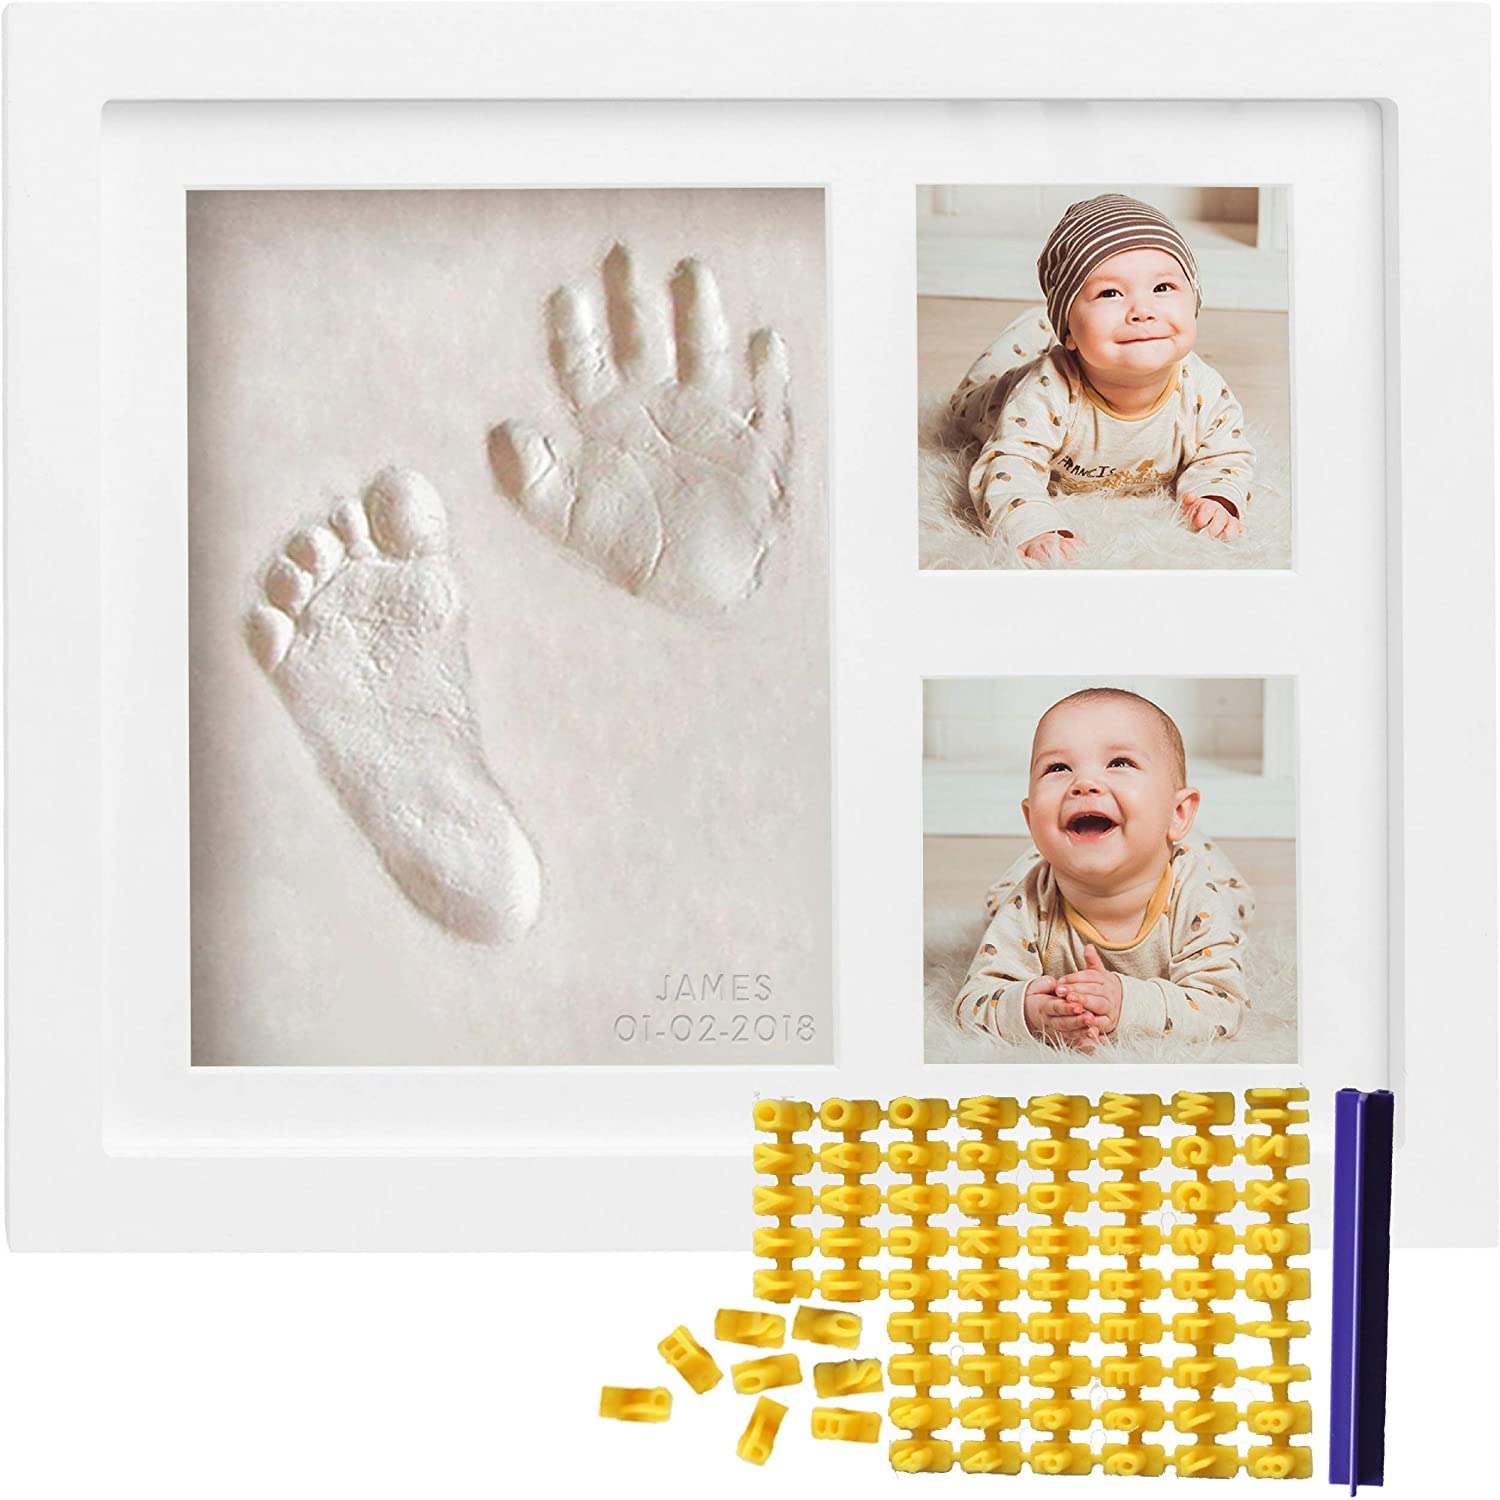 Baby Handprint Kit & Footprint Kit (FREE Date & Name Stamp) Clay Picture Frame for Newborn - Hand Impression Photo Keepsake - Best Shower Gifts Set for Girls and Boys - Unique White Foot Print No Mold Co Little